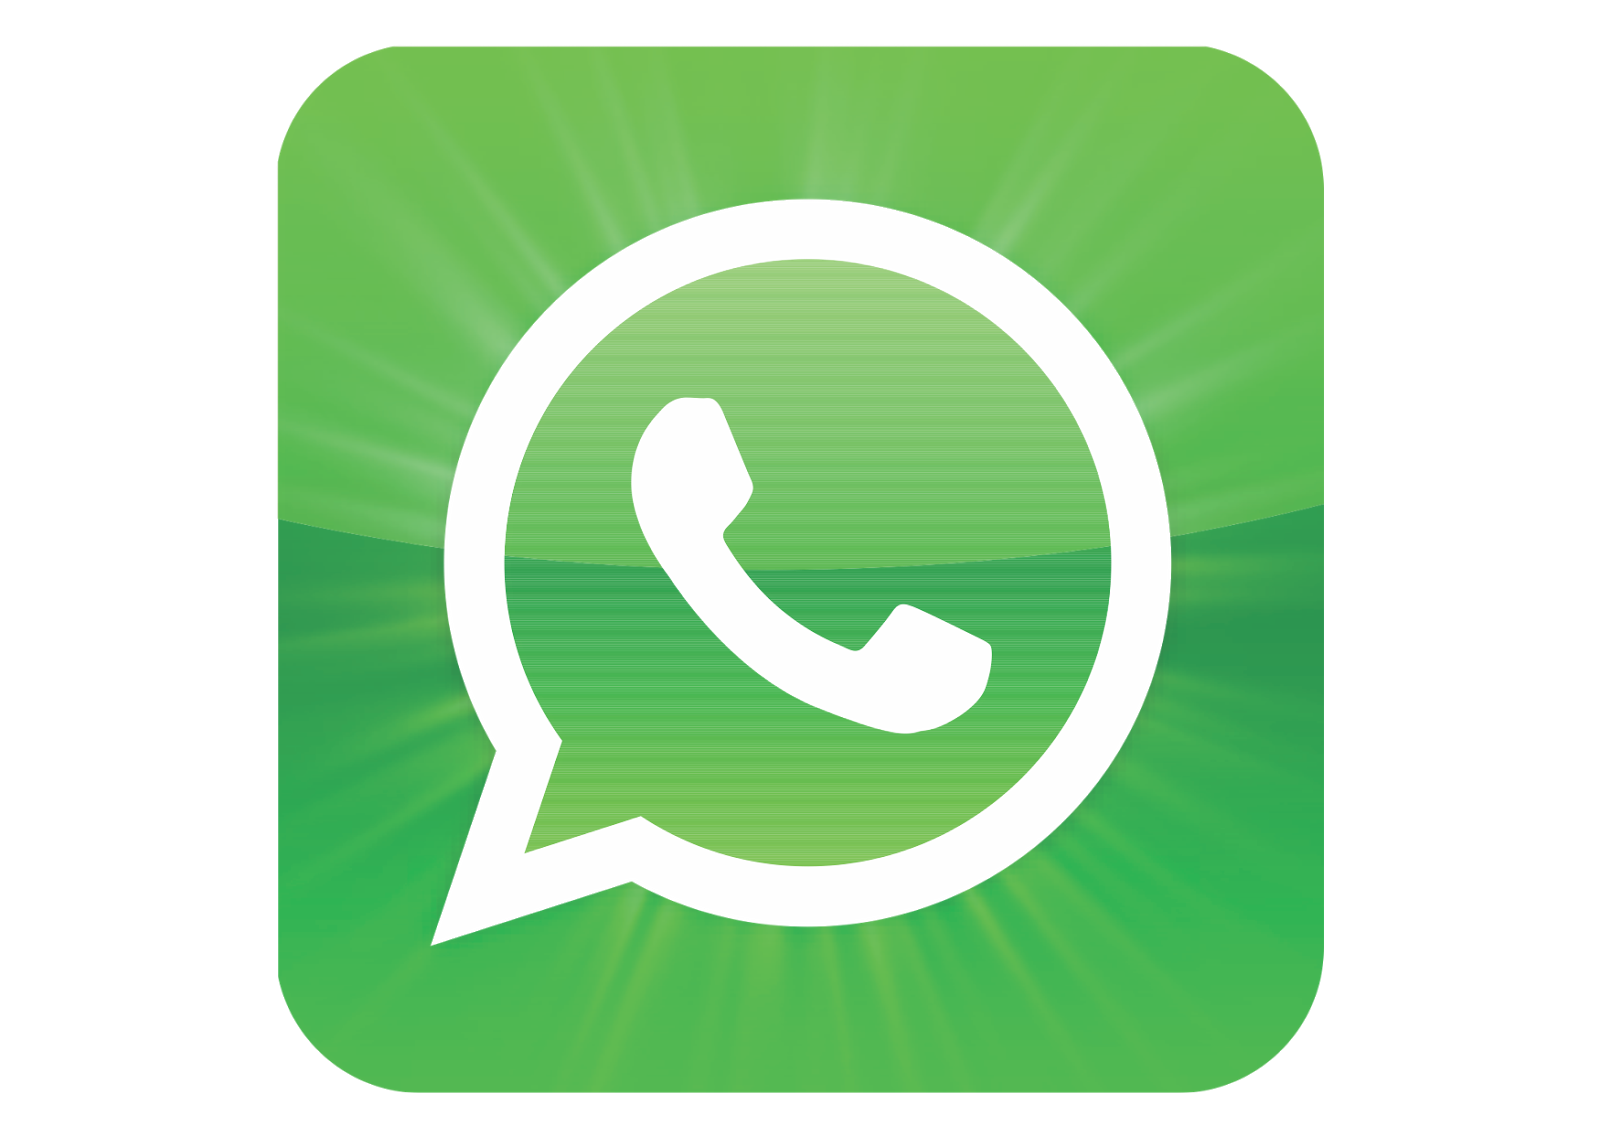 Download image png format. Whatsapp images free logo